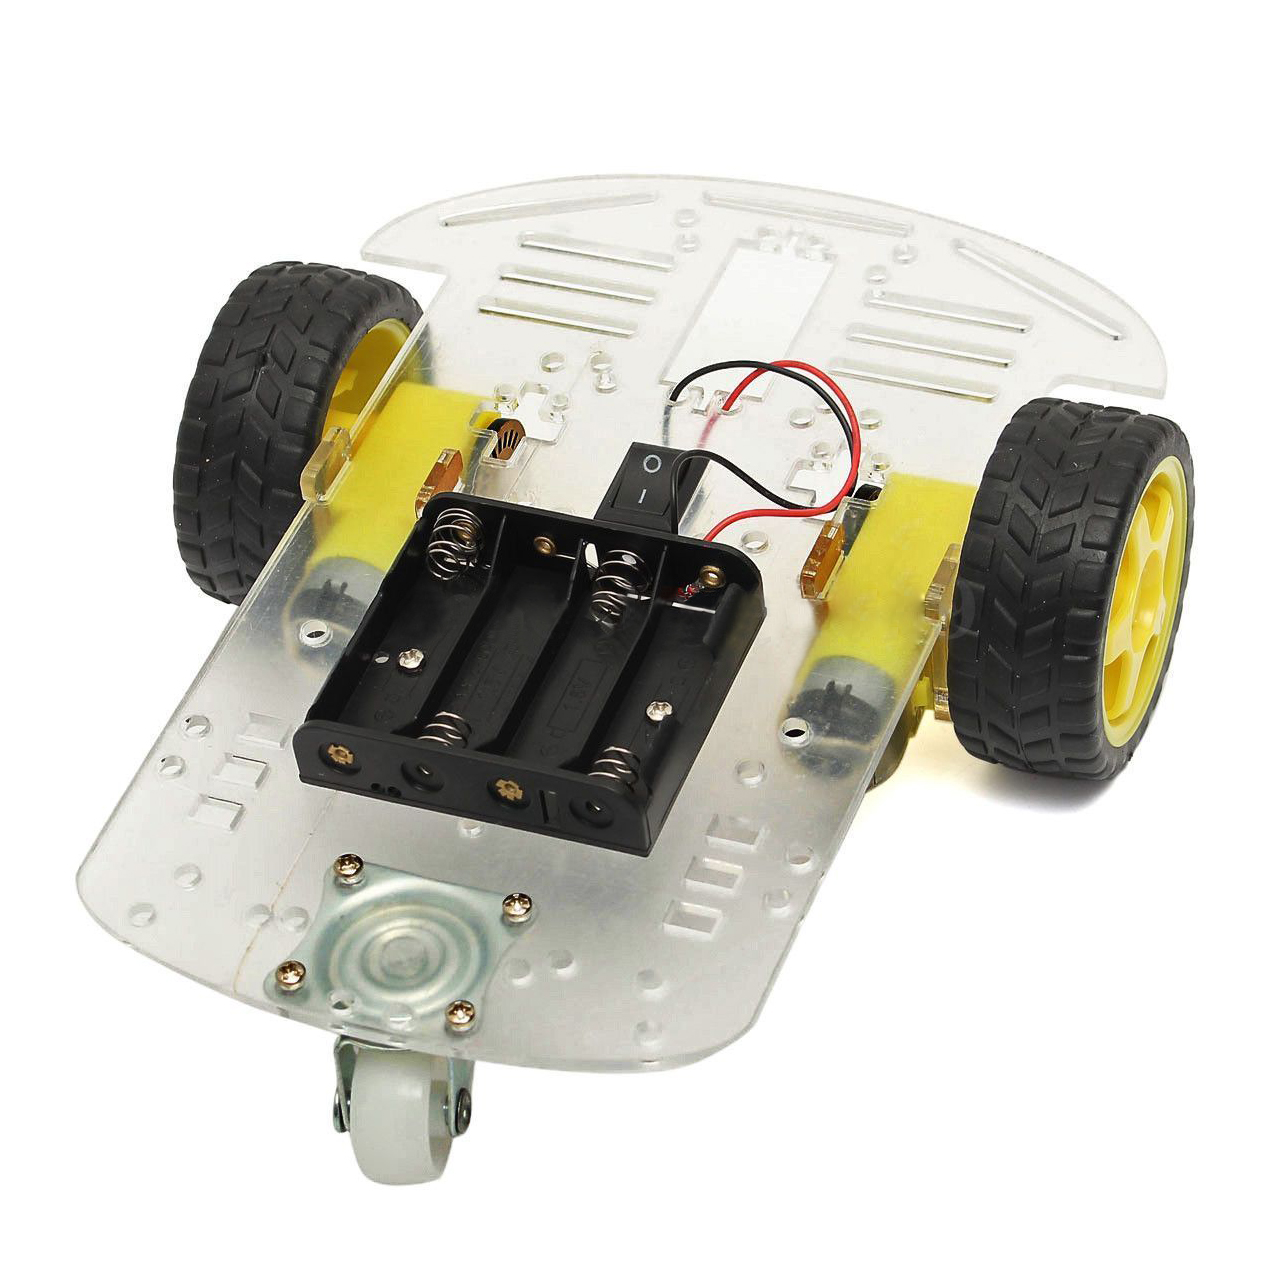 Wd smart motor robot car chassis battery box kit speed